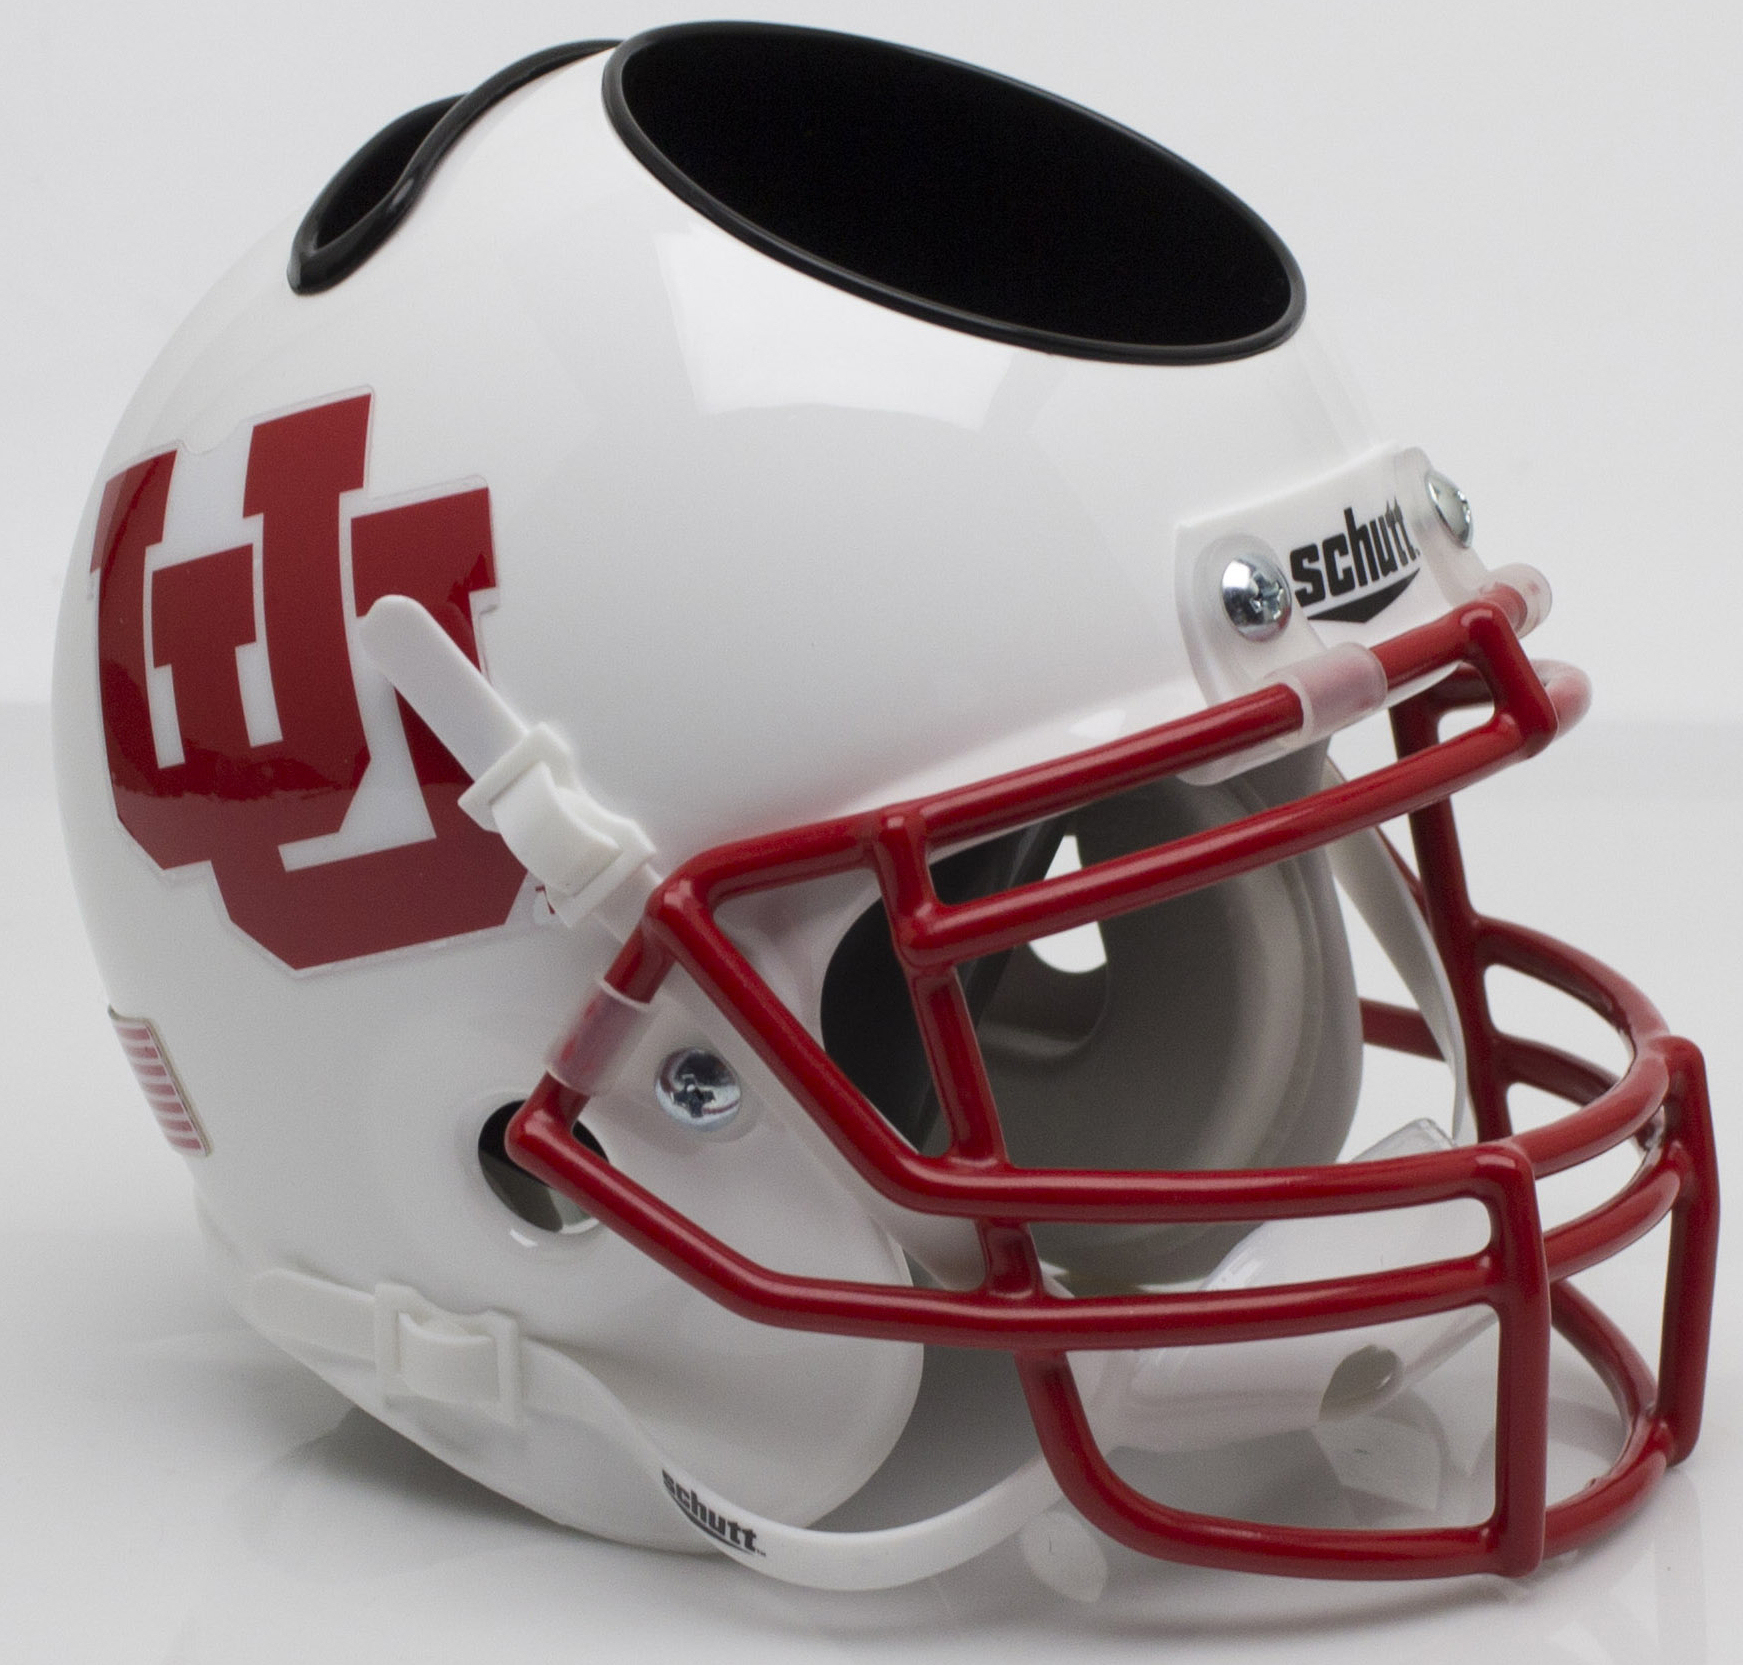 Utah Utes Miniature Football Helmet Desk Caddy <B>White UU</B>